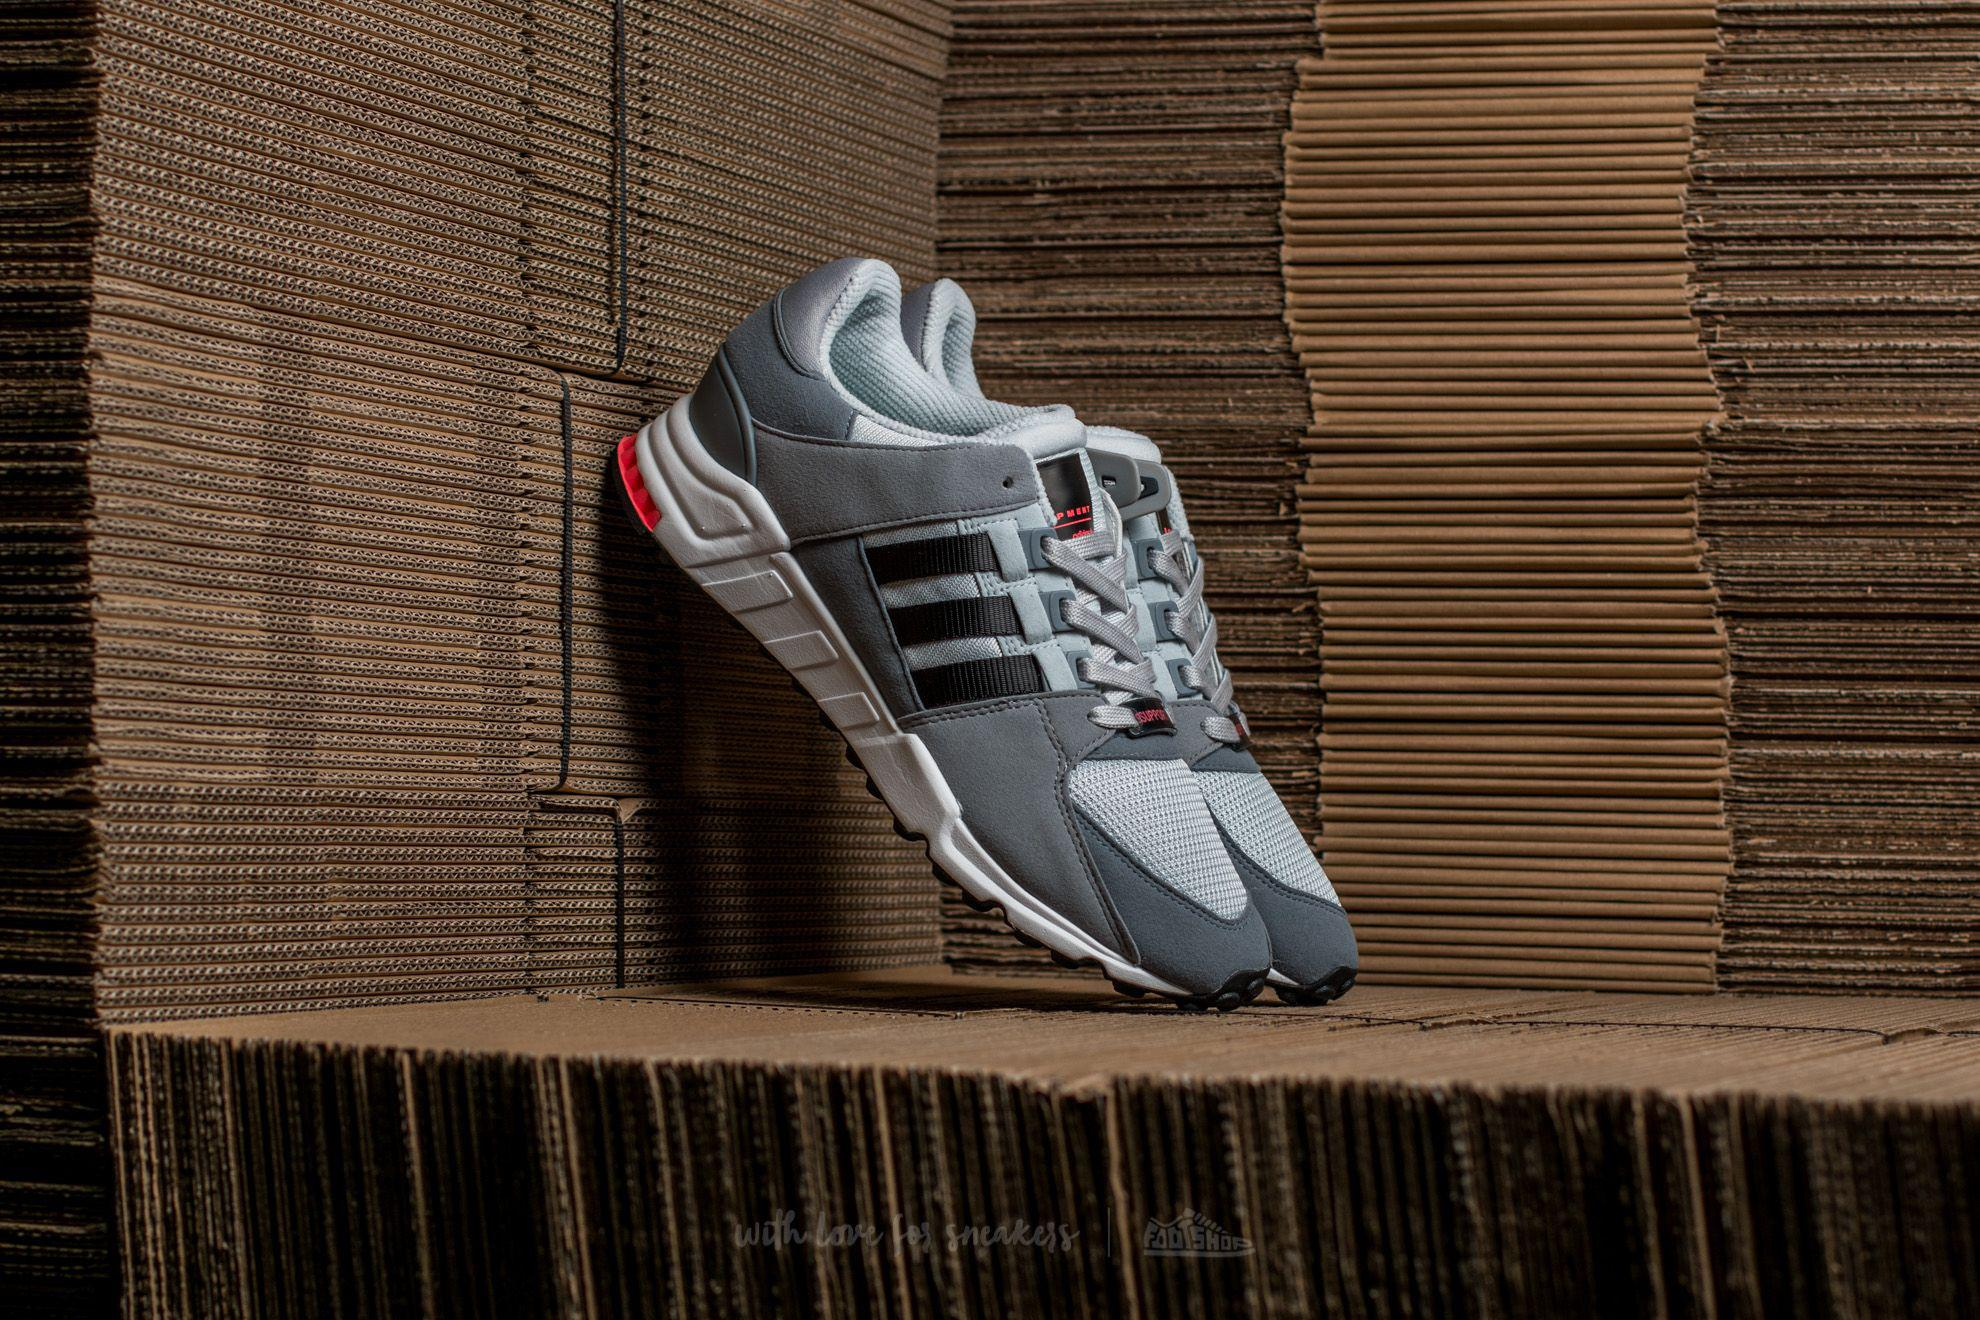 promo code 9edab efbed adidas-originals--Adidas-Eqt-Support-Rf-Light-Onix-Core-Black-Grey.jpeg